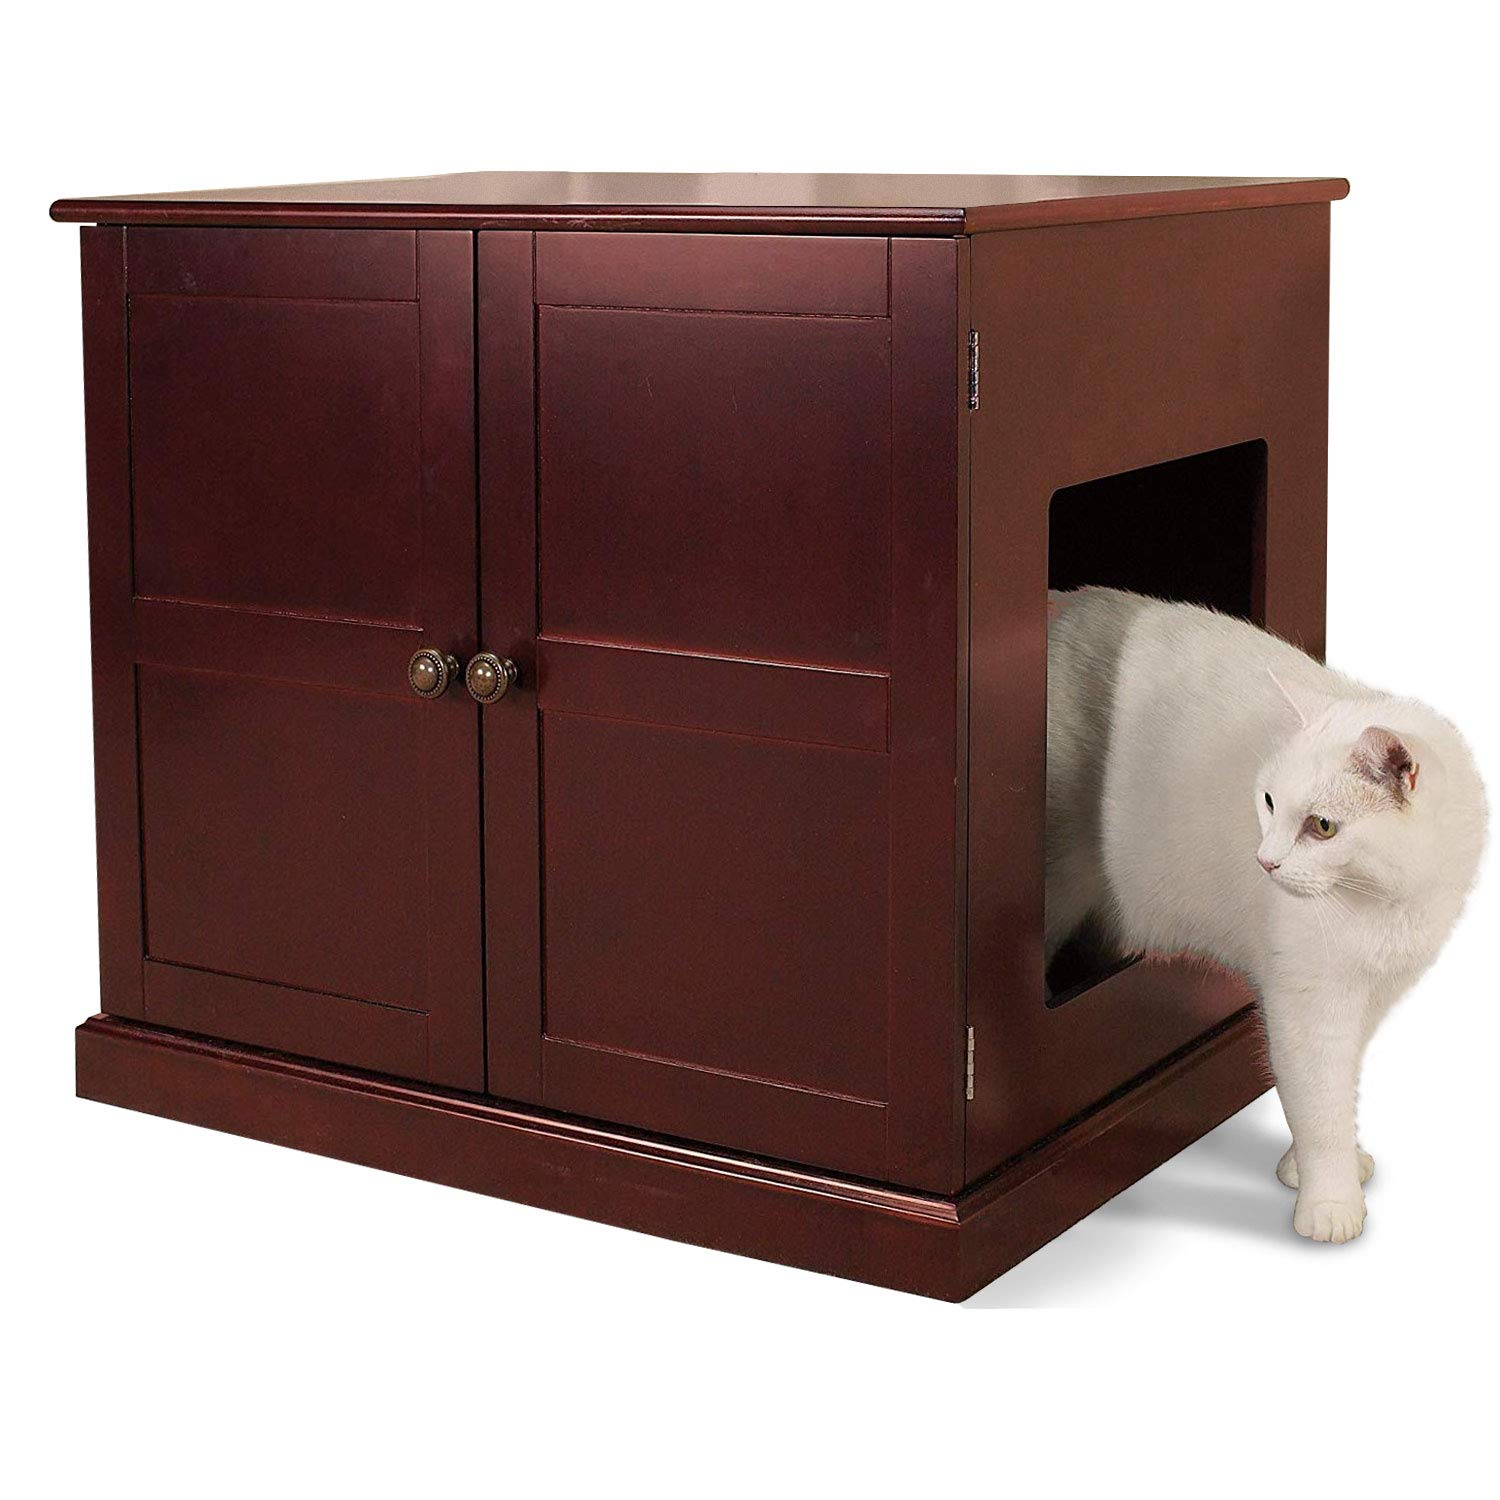 Meow Town Concord Cat Litter Cabinet, Mahogany-Finished Cat Litter Concealer